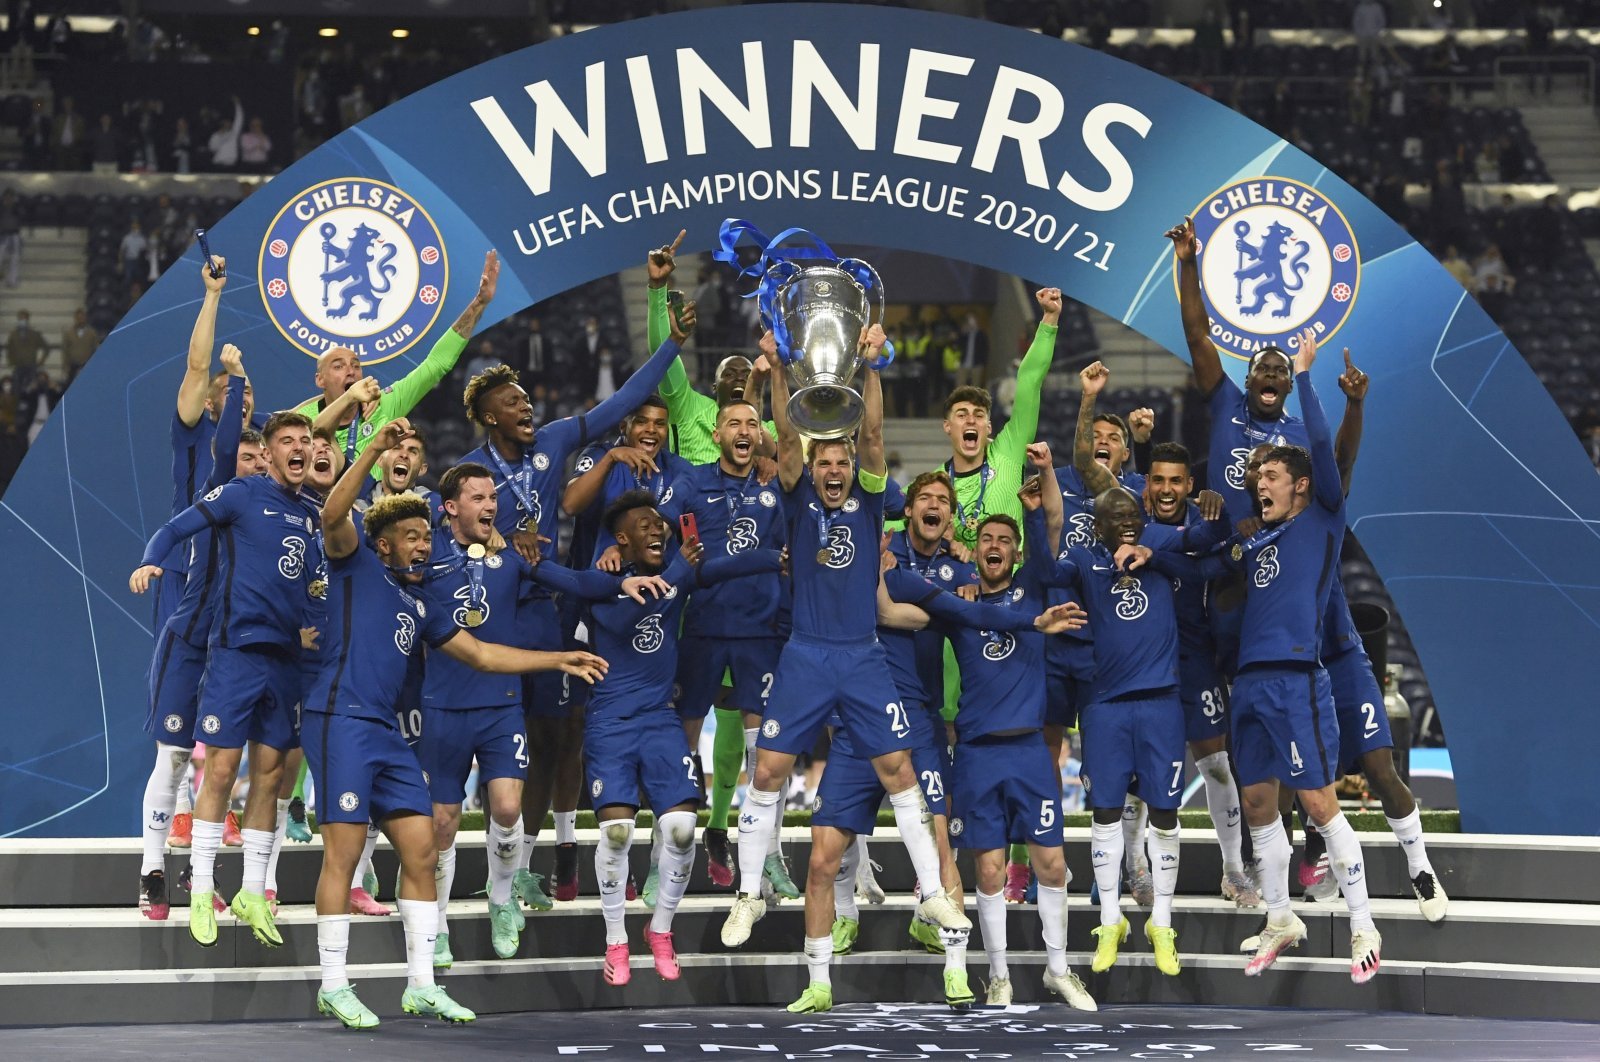 Chelsea's team captain Cesar Azpilicueta lifts the trophy after the Champions League final match against Manchester City at Dragao Stadium in Porto, Portugal, May 29, 2021. (AP Photo)